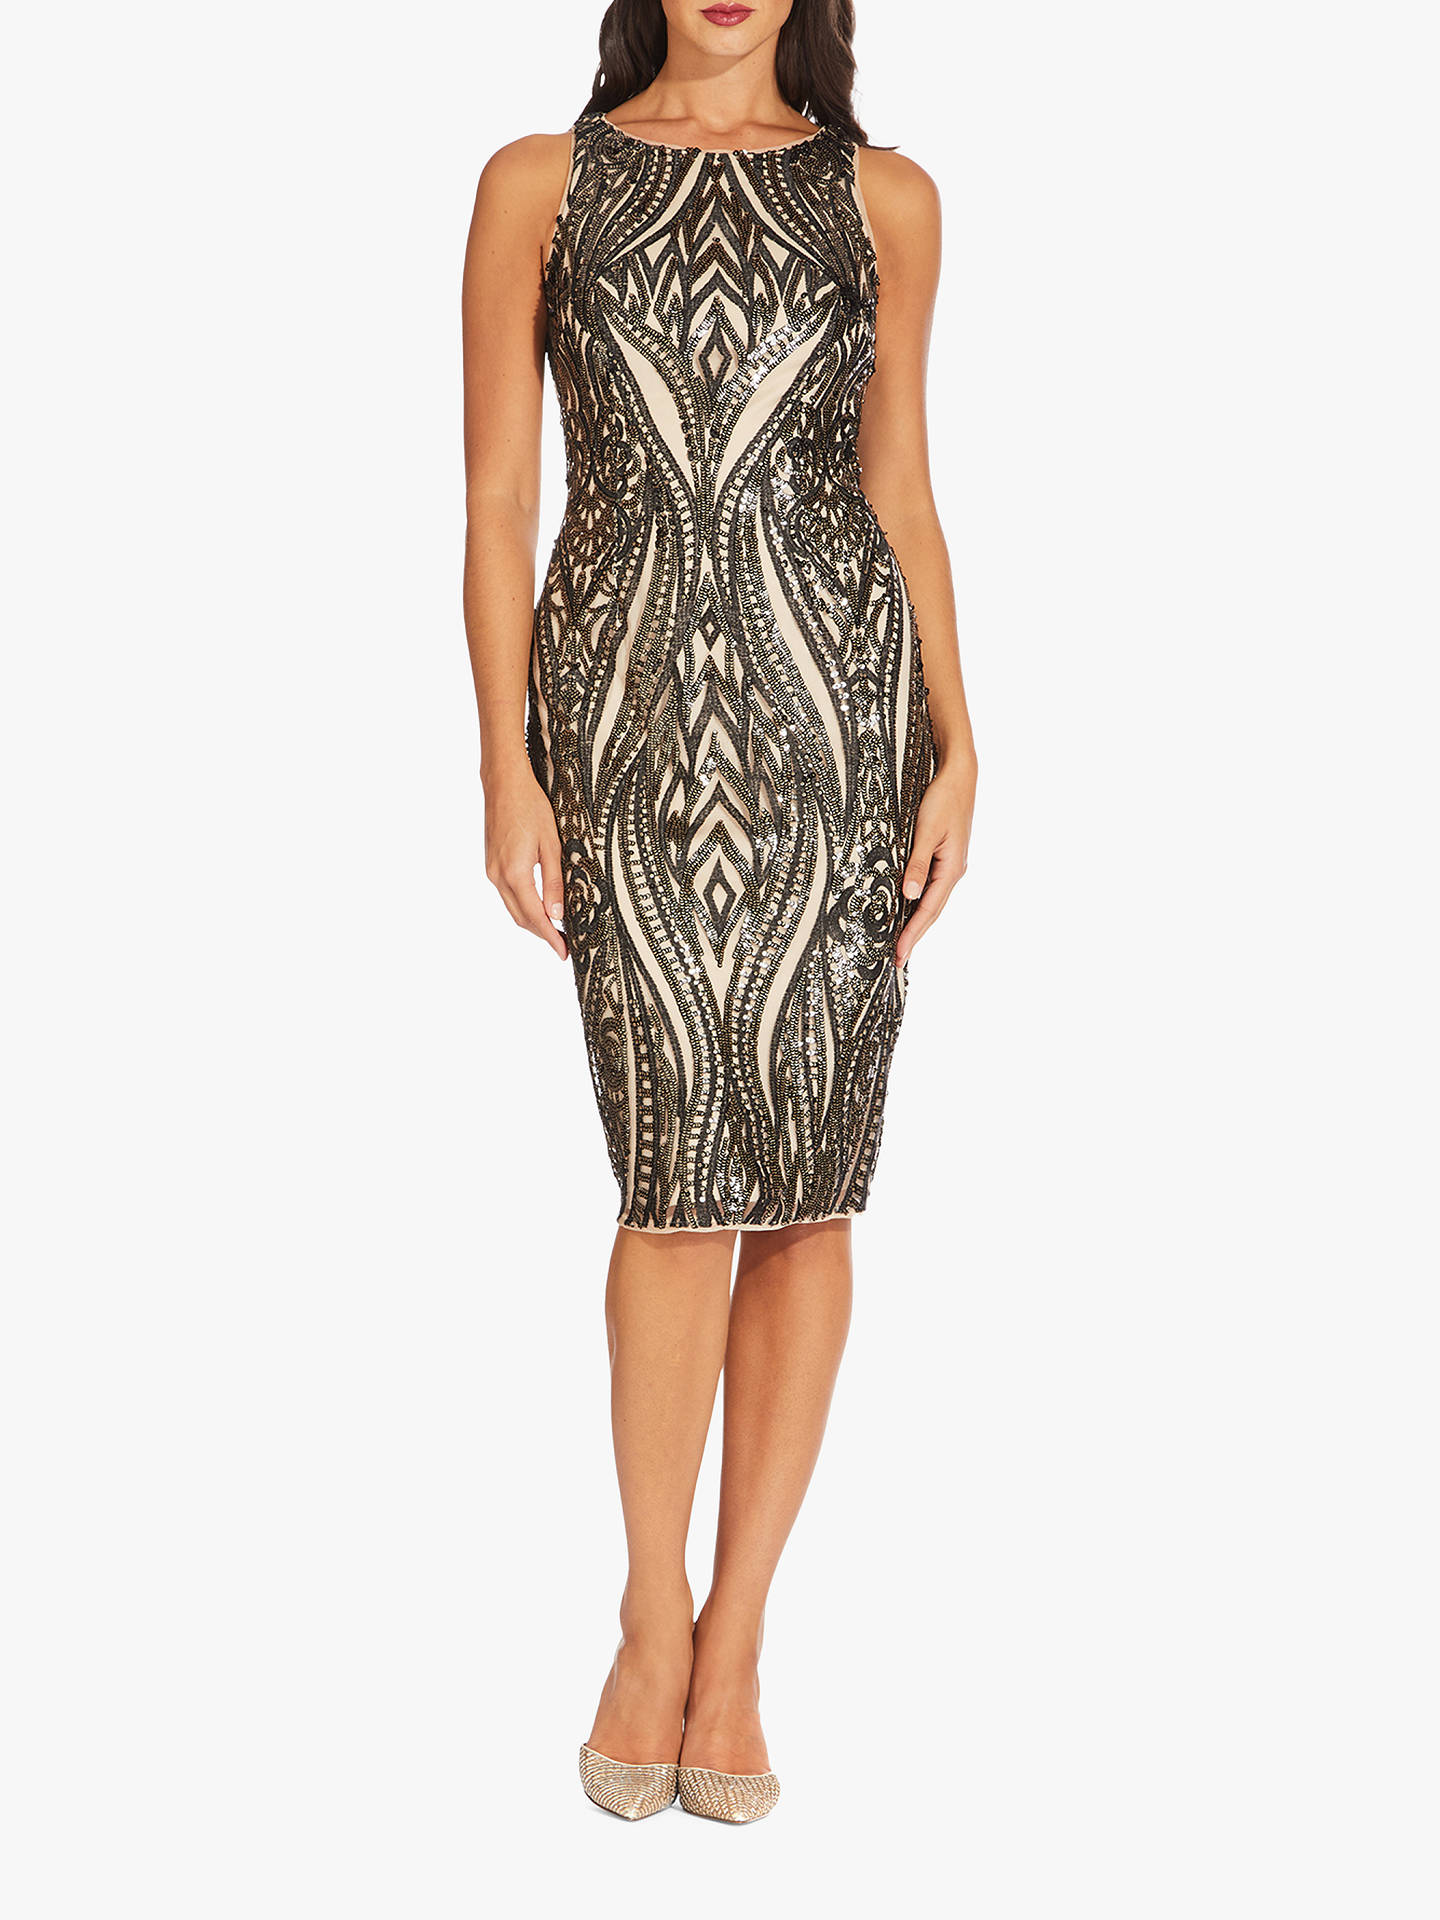 Buy Adrianna Papell Halter Short Dress, Black/Champagne, 6 Online at johnlewis.com